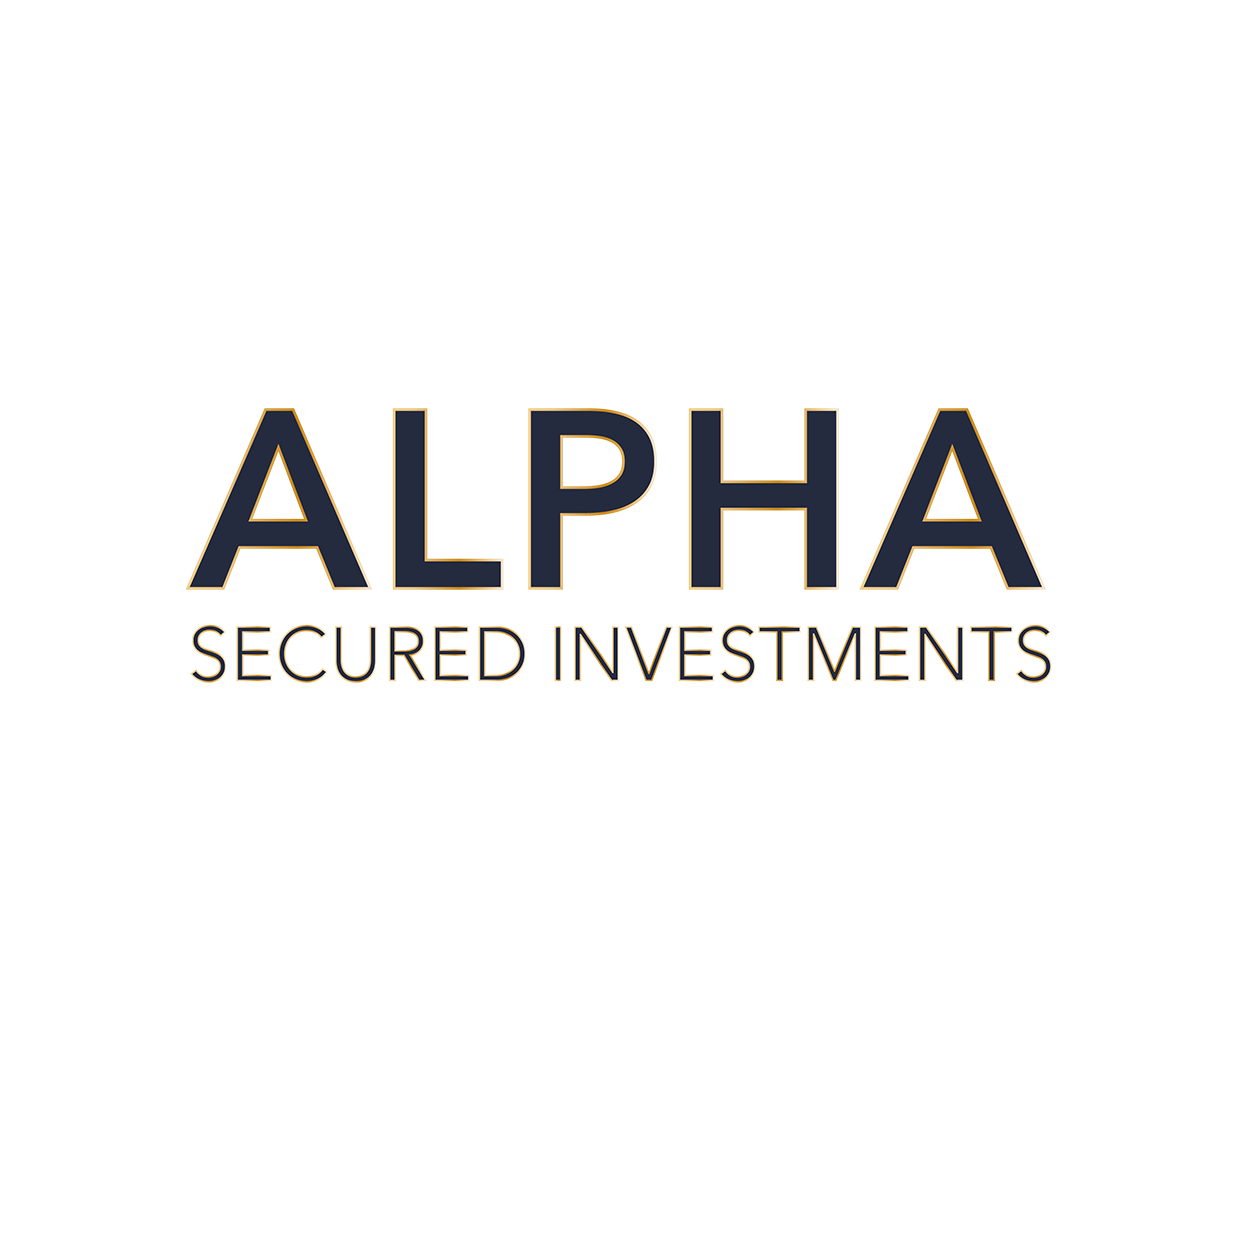 Alpha Secured Investments